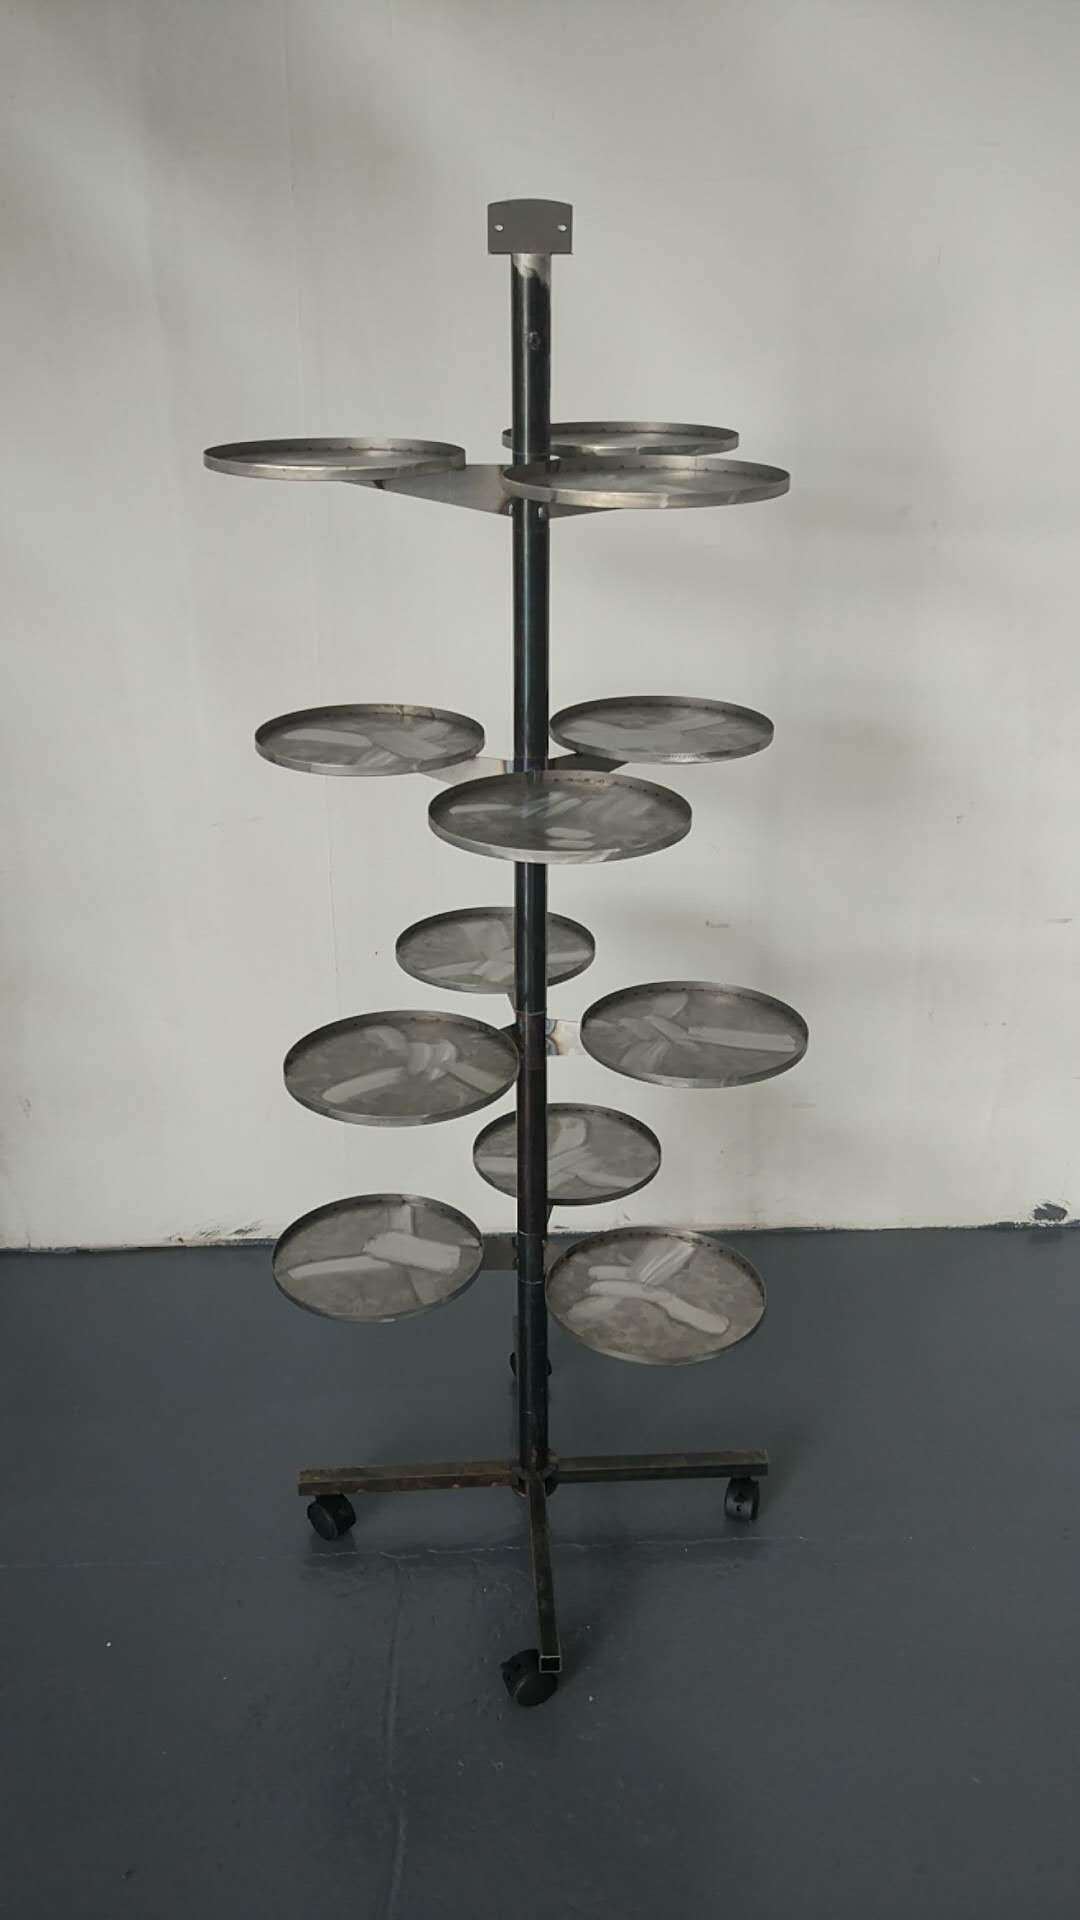 YISHANG -China Suppliers Wholesale Floor Cosmetic Display Stands | Cosmetic Stand Company-1